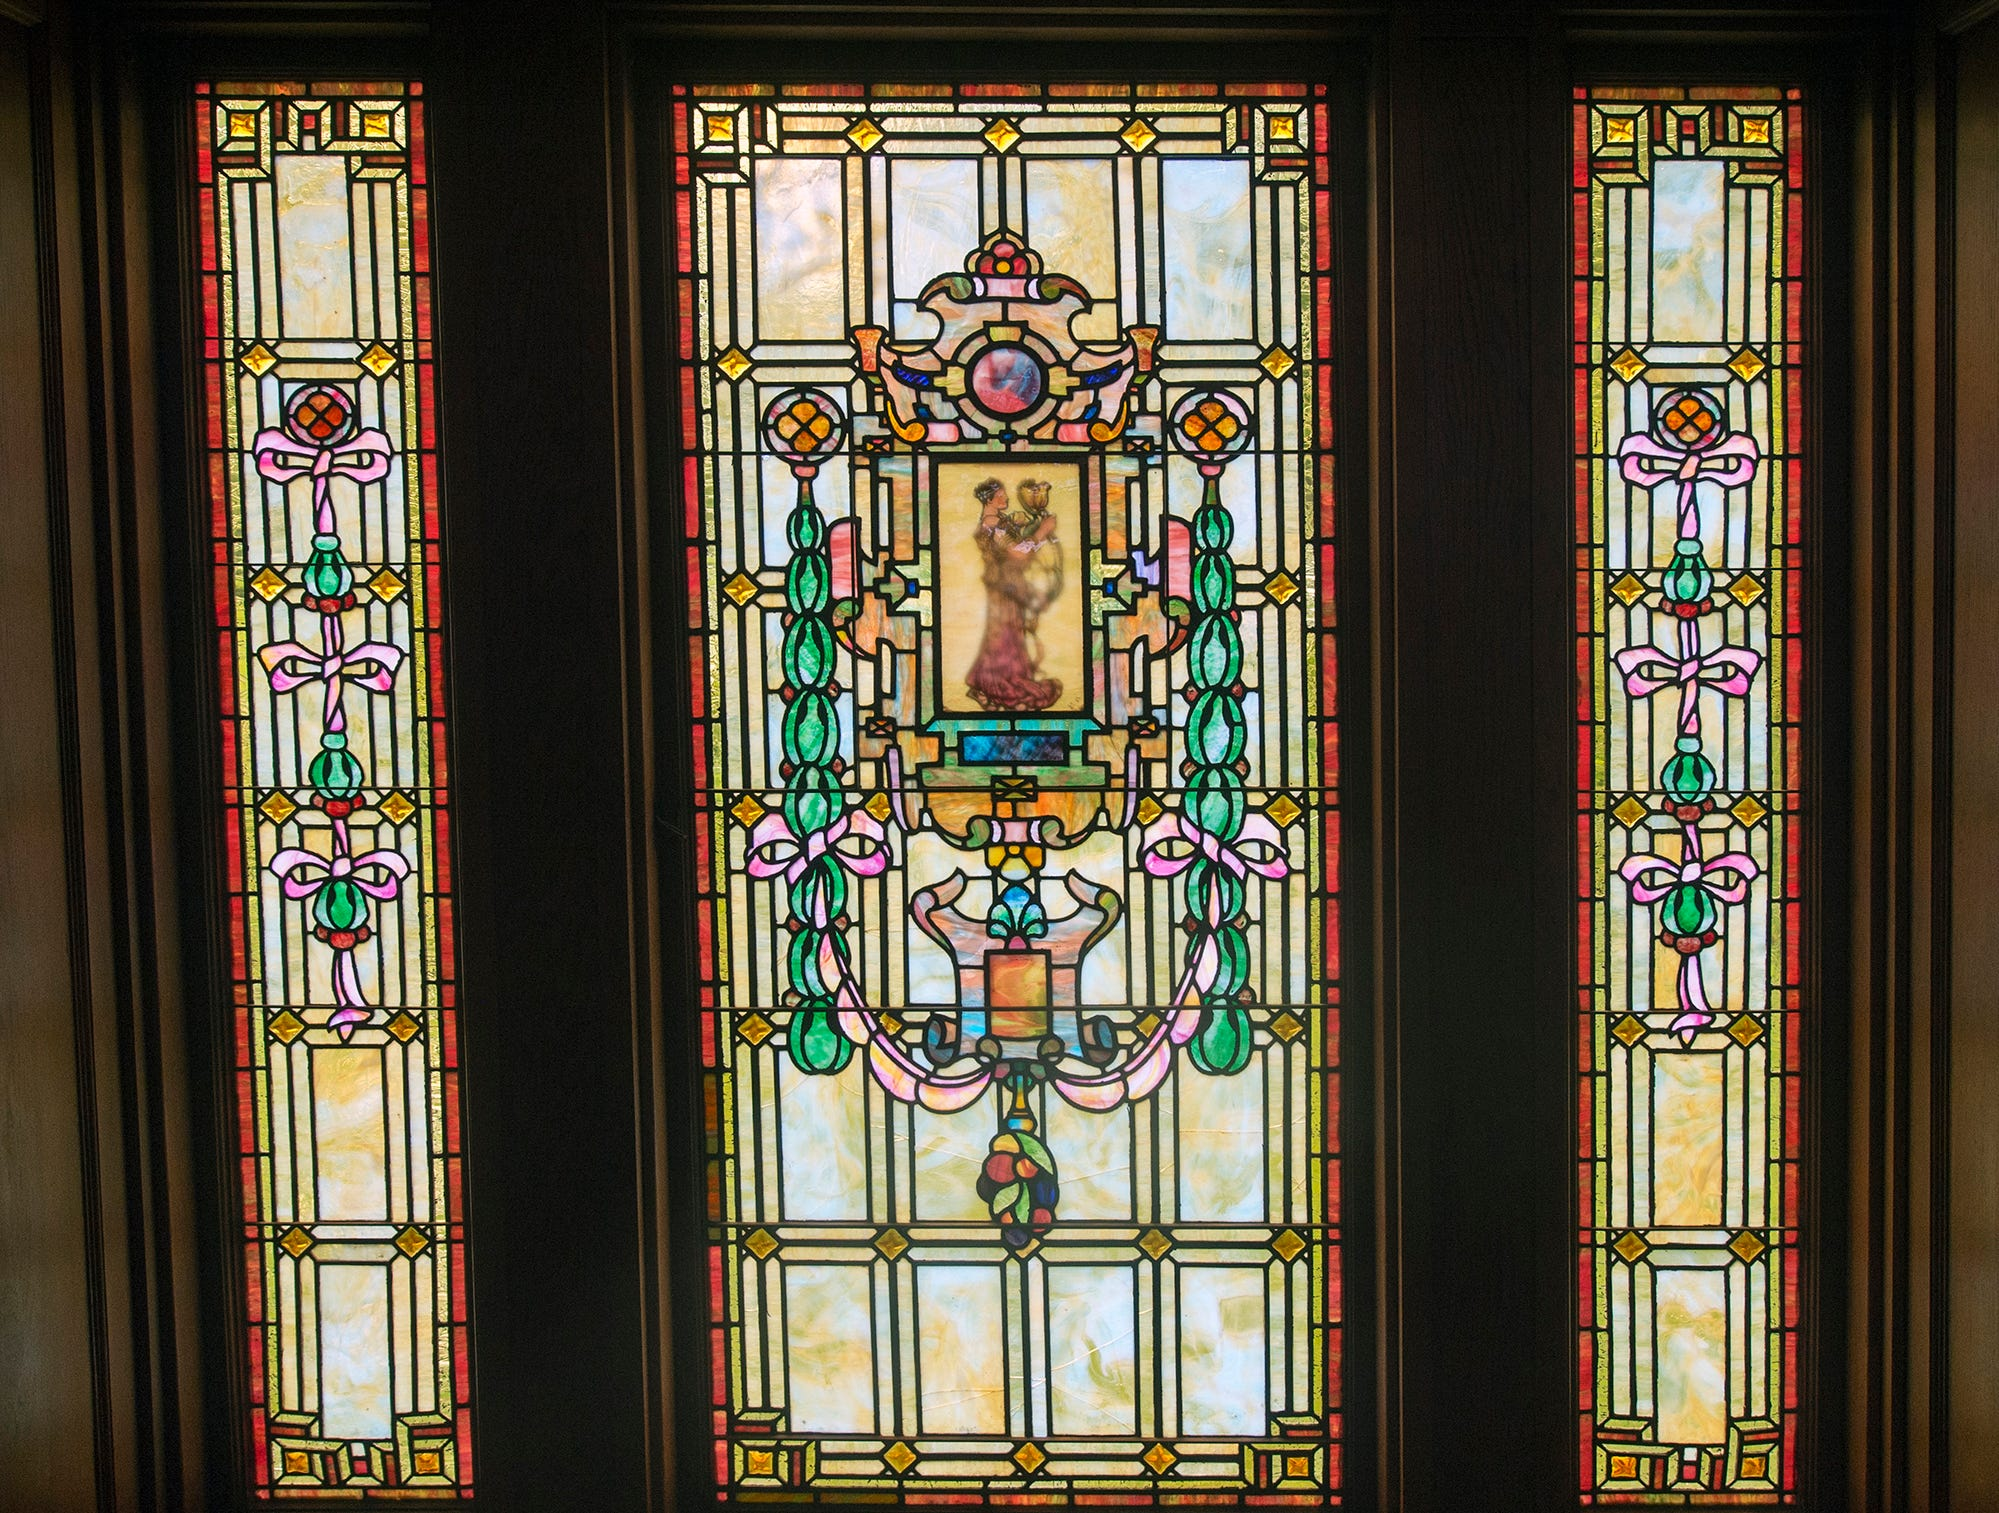 The stained glass bathes the landing between the first and second floors with warm light at the Emig Mansion Bed & Breakfast May 17, 2015.